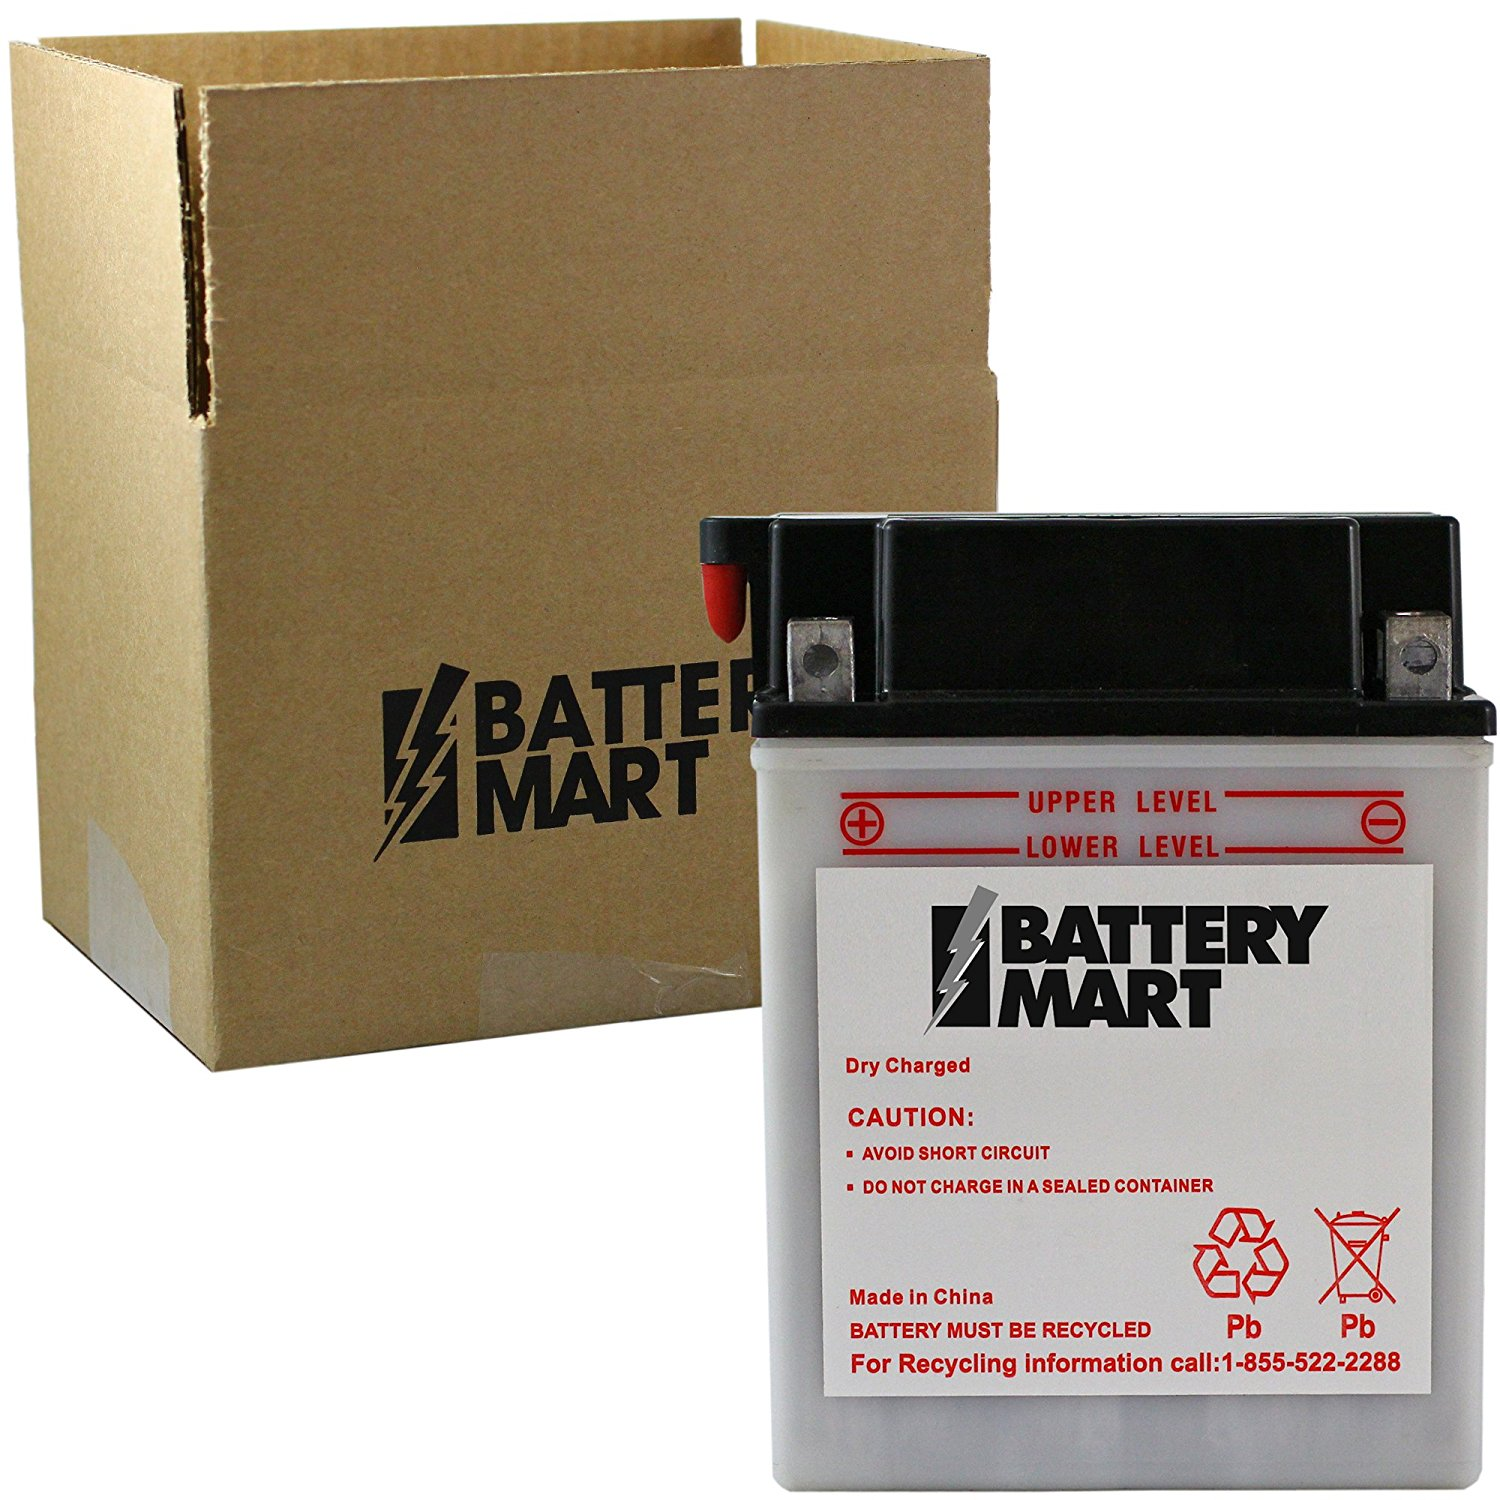 YB12C-A Dry Charge Motorcycle Battery Replaces 01-185, 12N12C-4A-2, 1B12CA, 1UY-82110-61-00, 3FA-82110-12-00, 740-1823-44055, CB1-2CA00-00-00, CB12C-A, GM12CZ-4A-2, M222CA, MOFM322CA, and MORE!!